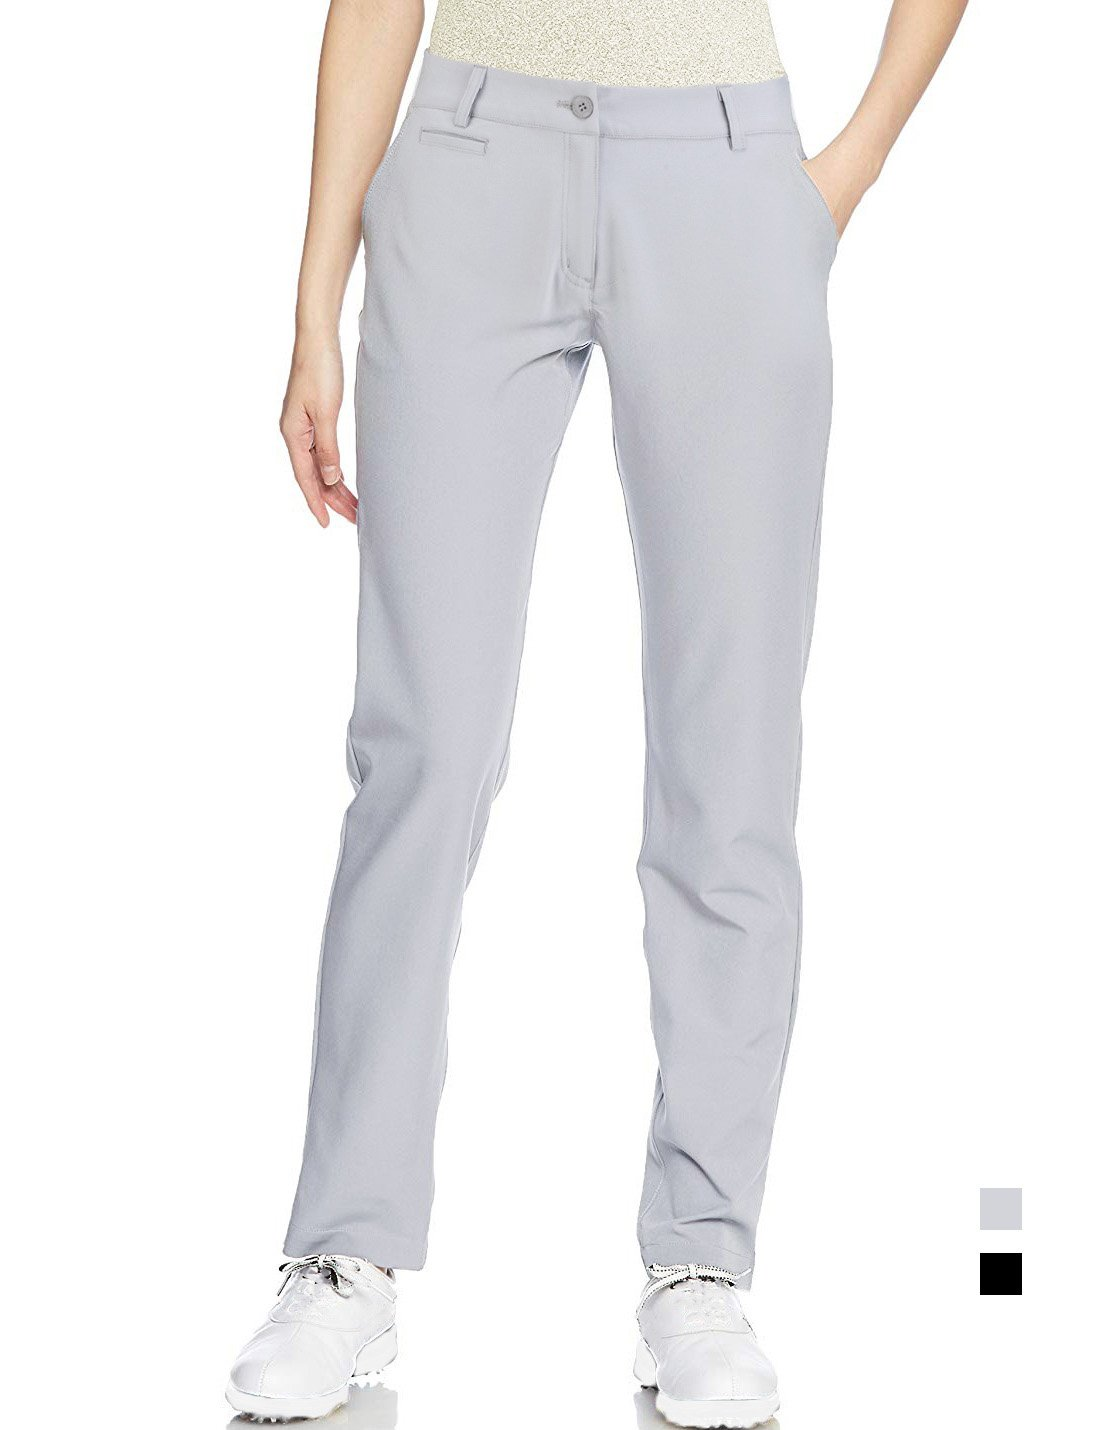 Golf Pants Women Long Stretch Tall Straight Leg Twill Work Chino Ladies Size 4 Grey by Lesmart